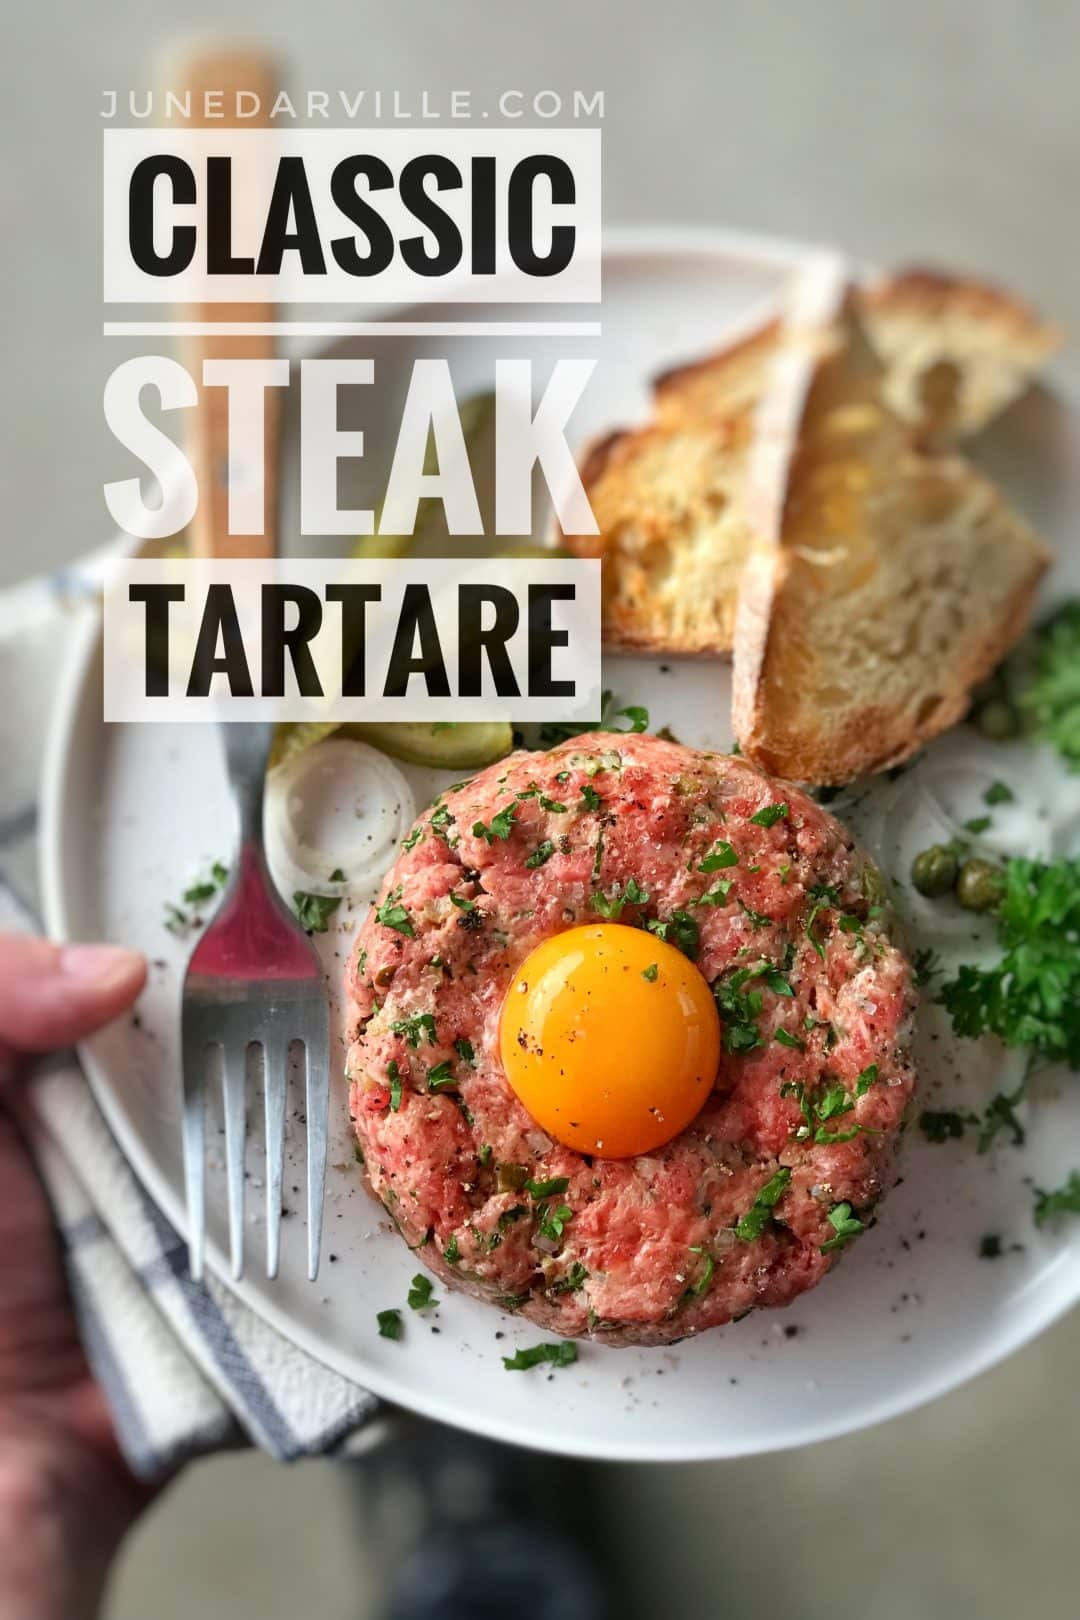 A classic I adore: homemade steak tartare! Raw ground beef with chopped shallots, capers, mayo, gherkins, egg yolk and tabasco... My absolute favorite!